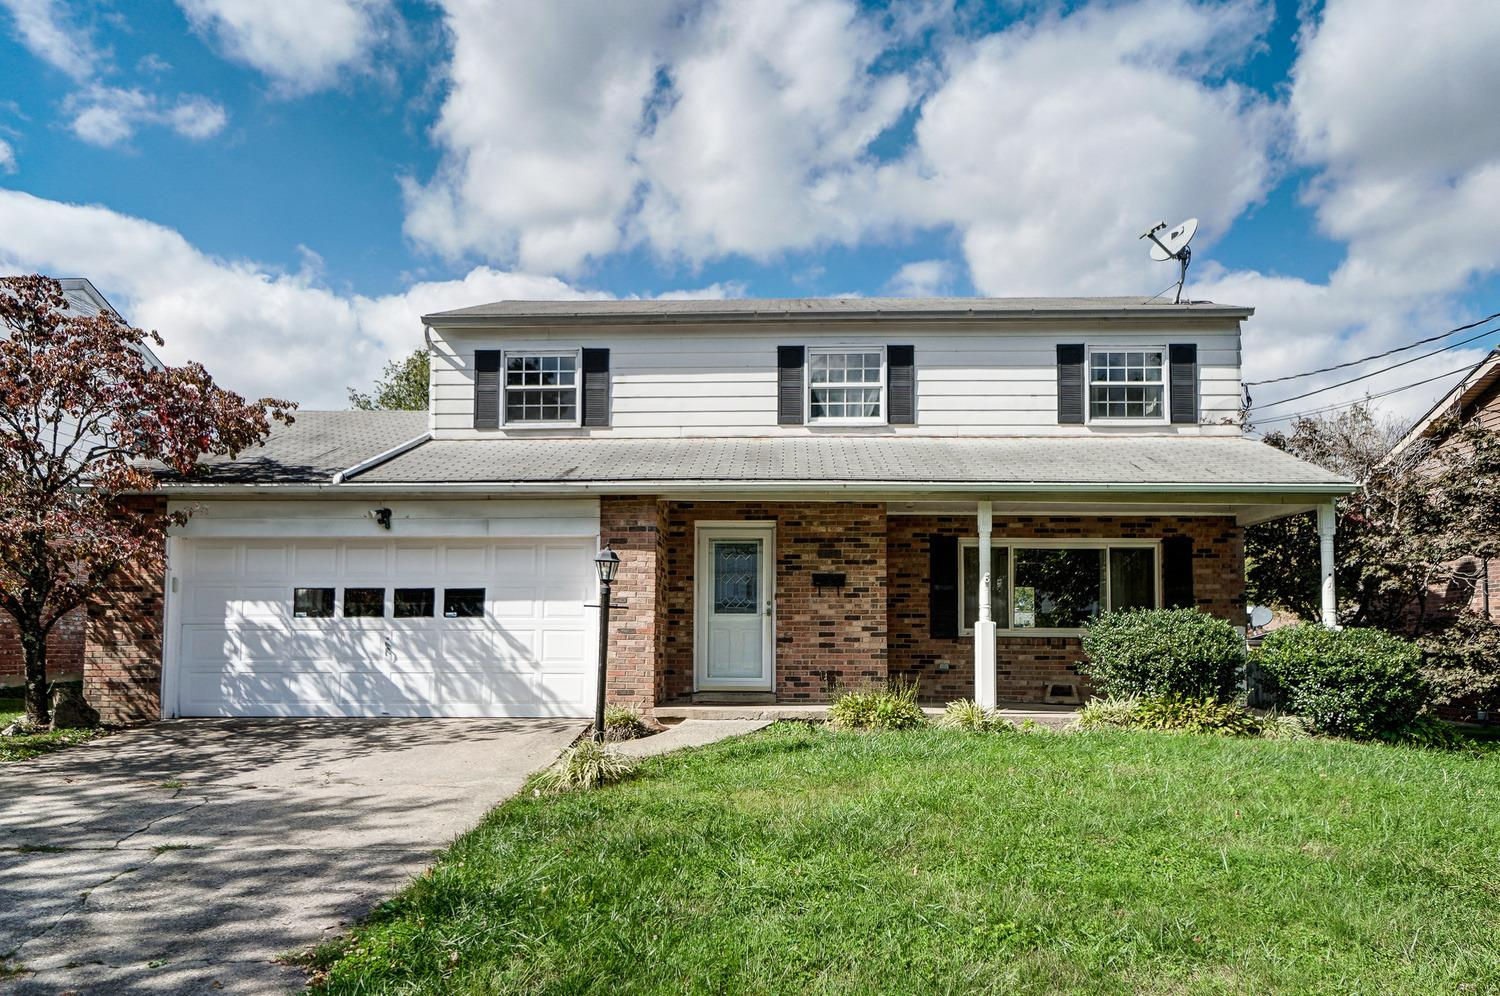 1163 Oldwick Drive, Reading, Ohio 45215, 4 Bedrooms Bedrooms, 10 Rooms Rooms,2 BathroomsBathrooms,Single Family Residence,For Sale,Oldwick,1718916